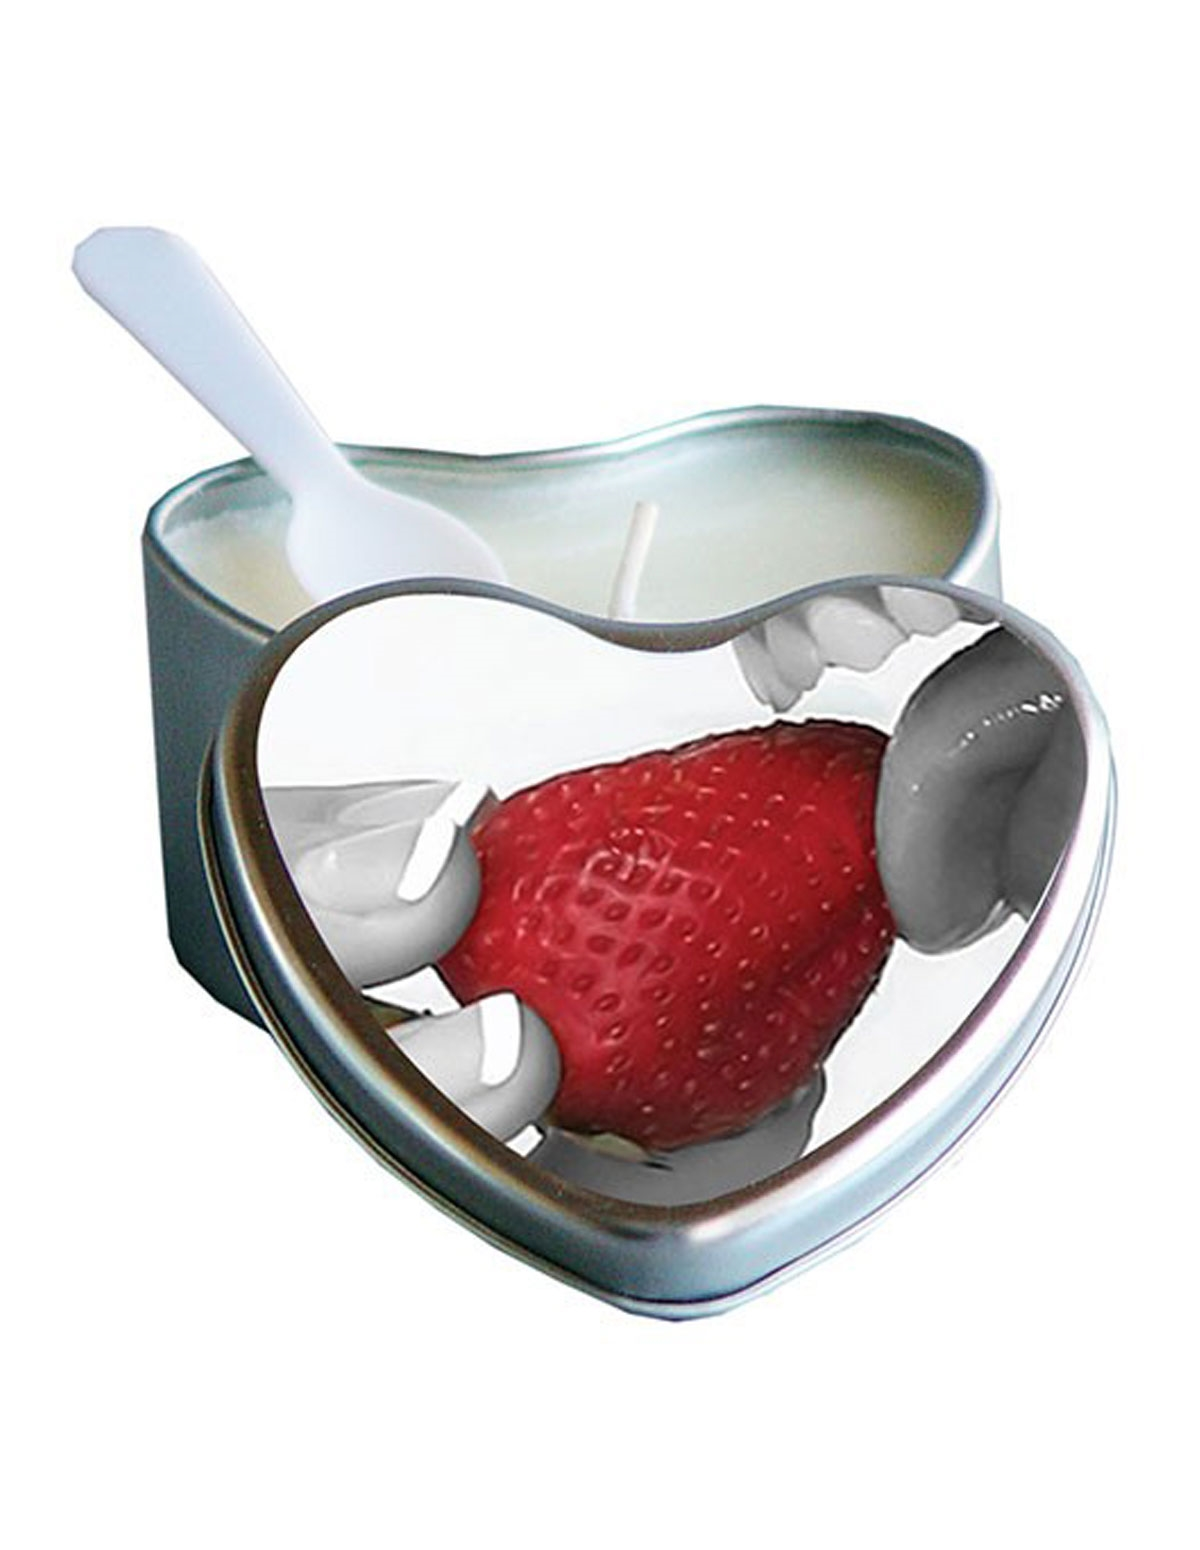 Strawberry Edible Massage Candle